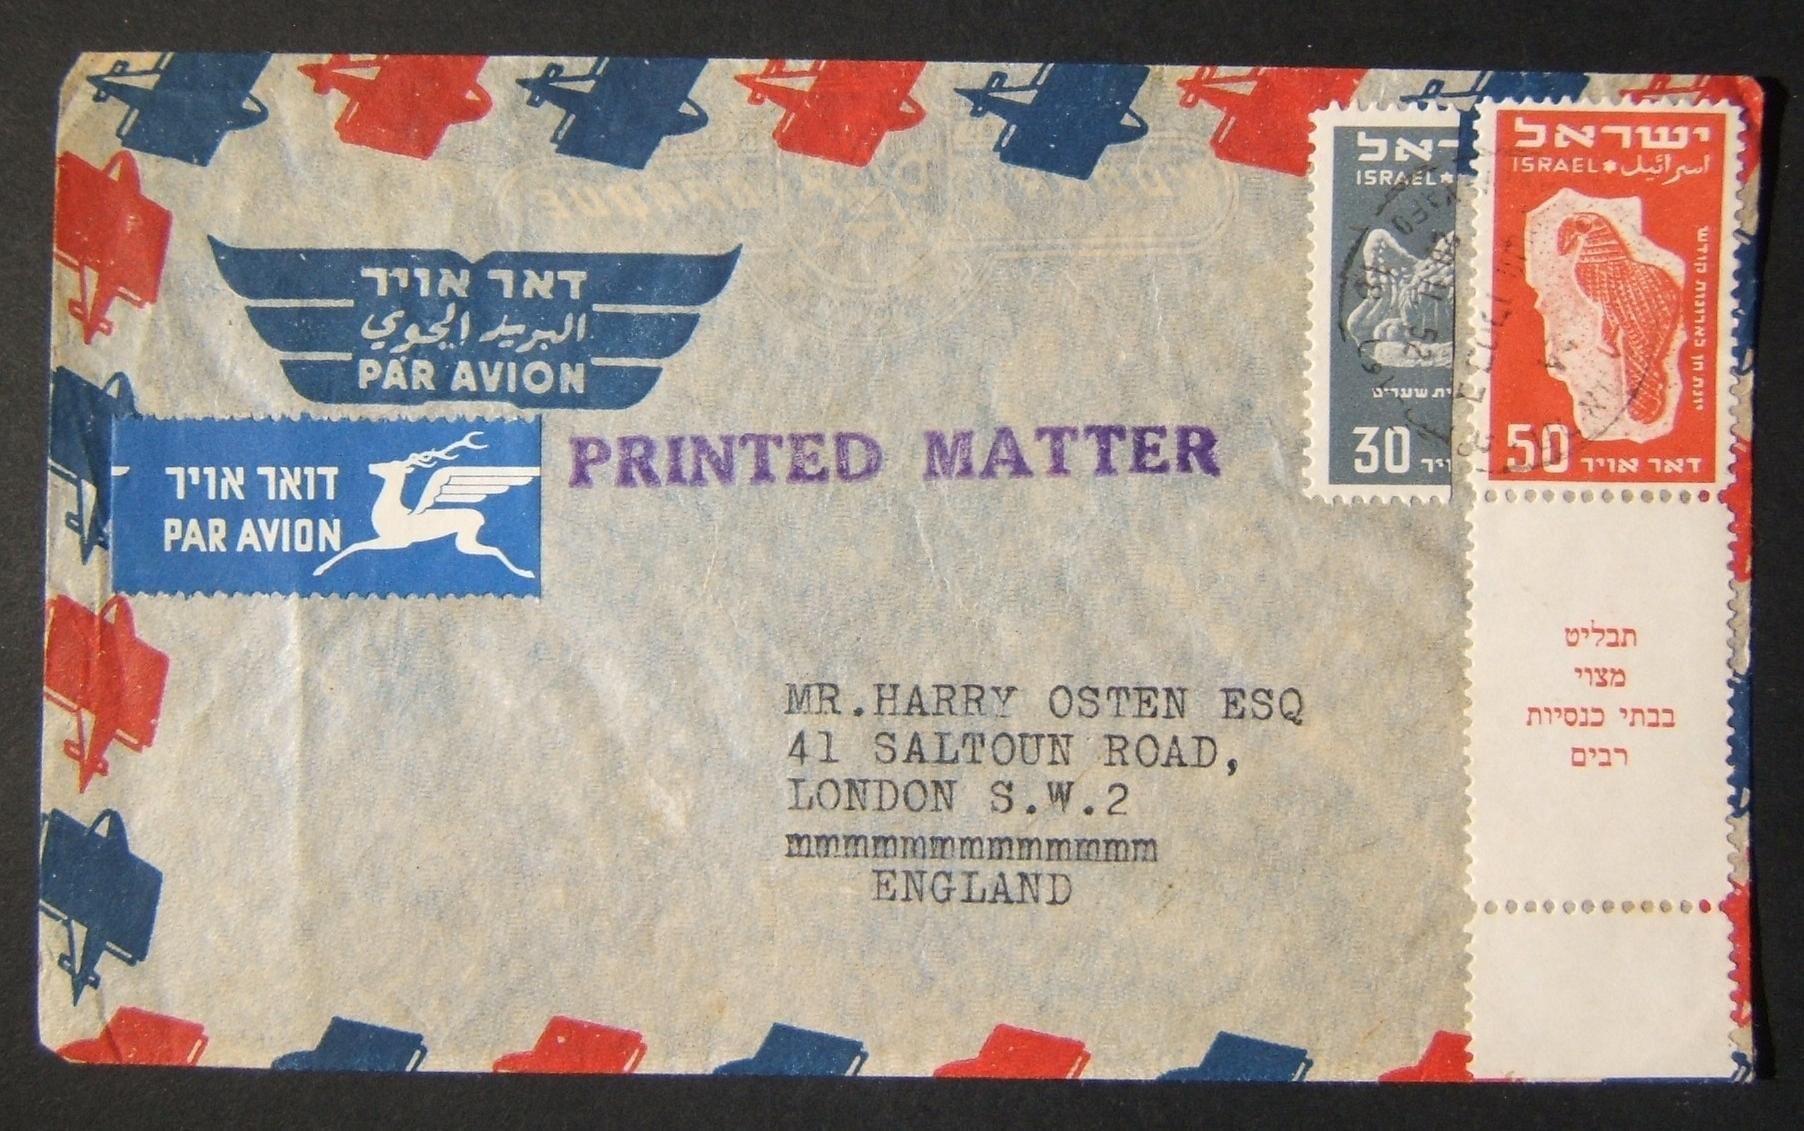 1952 printed matter airmail to UK franked with bisected stamp against postal regulations